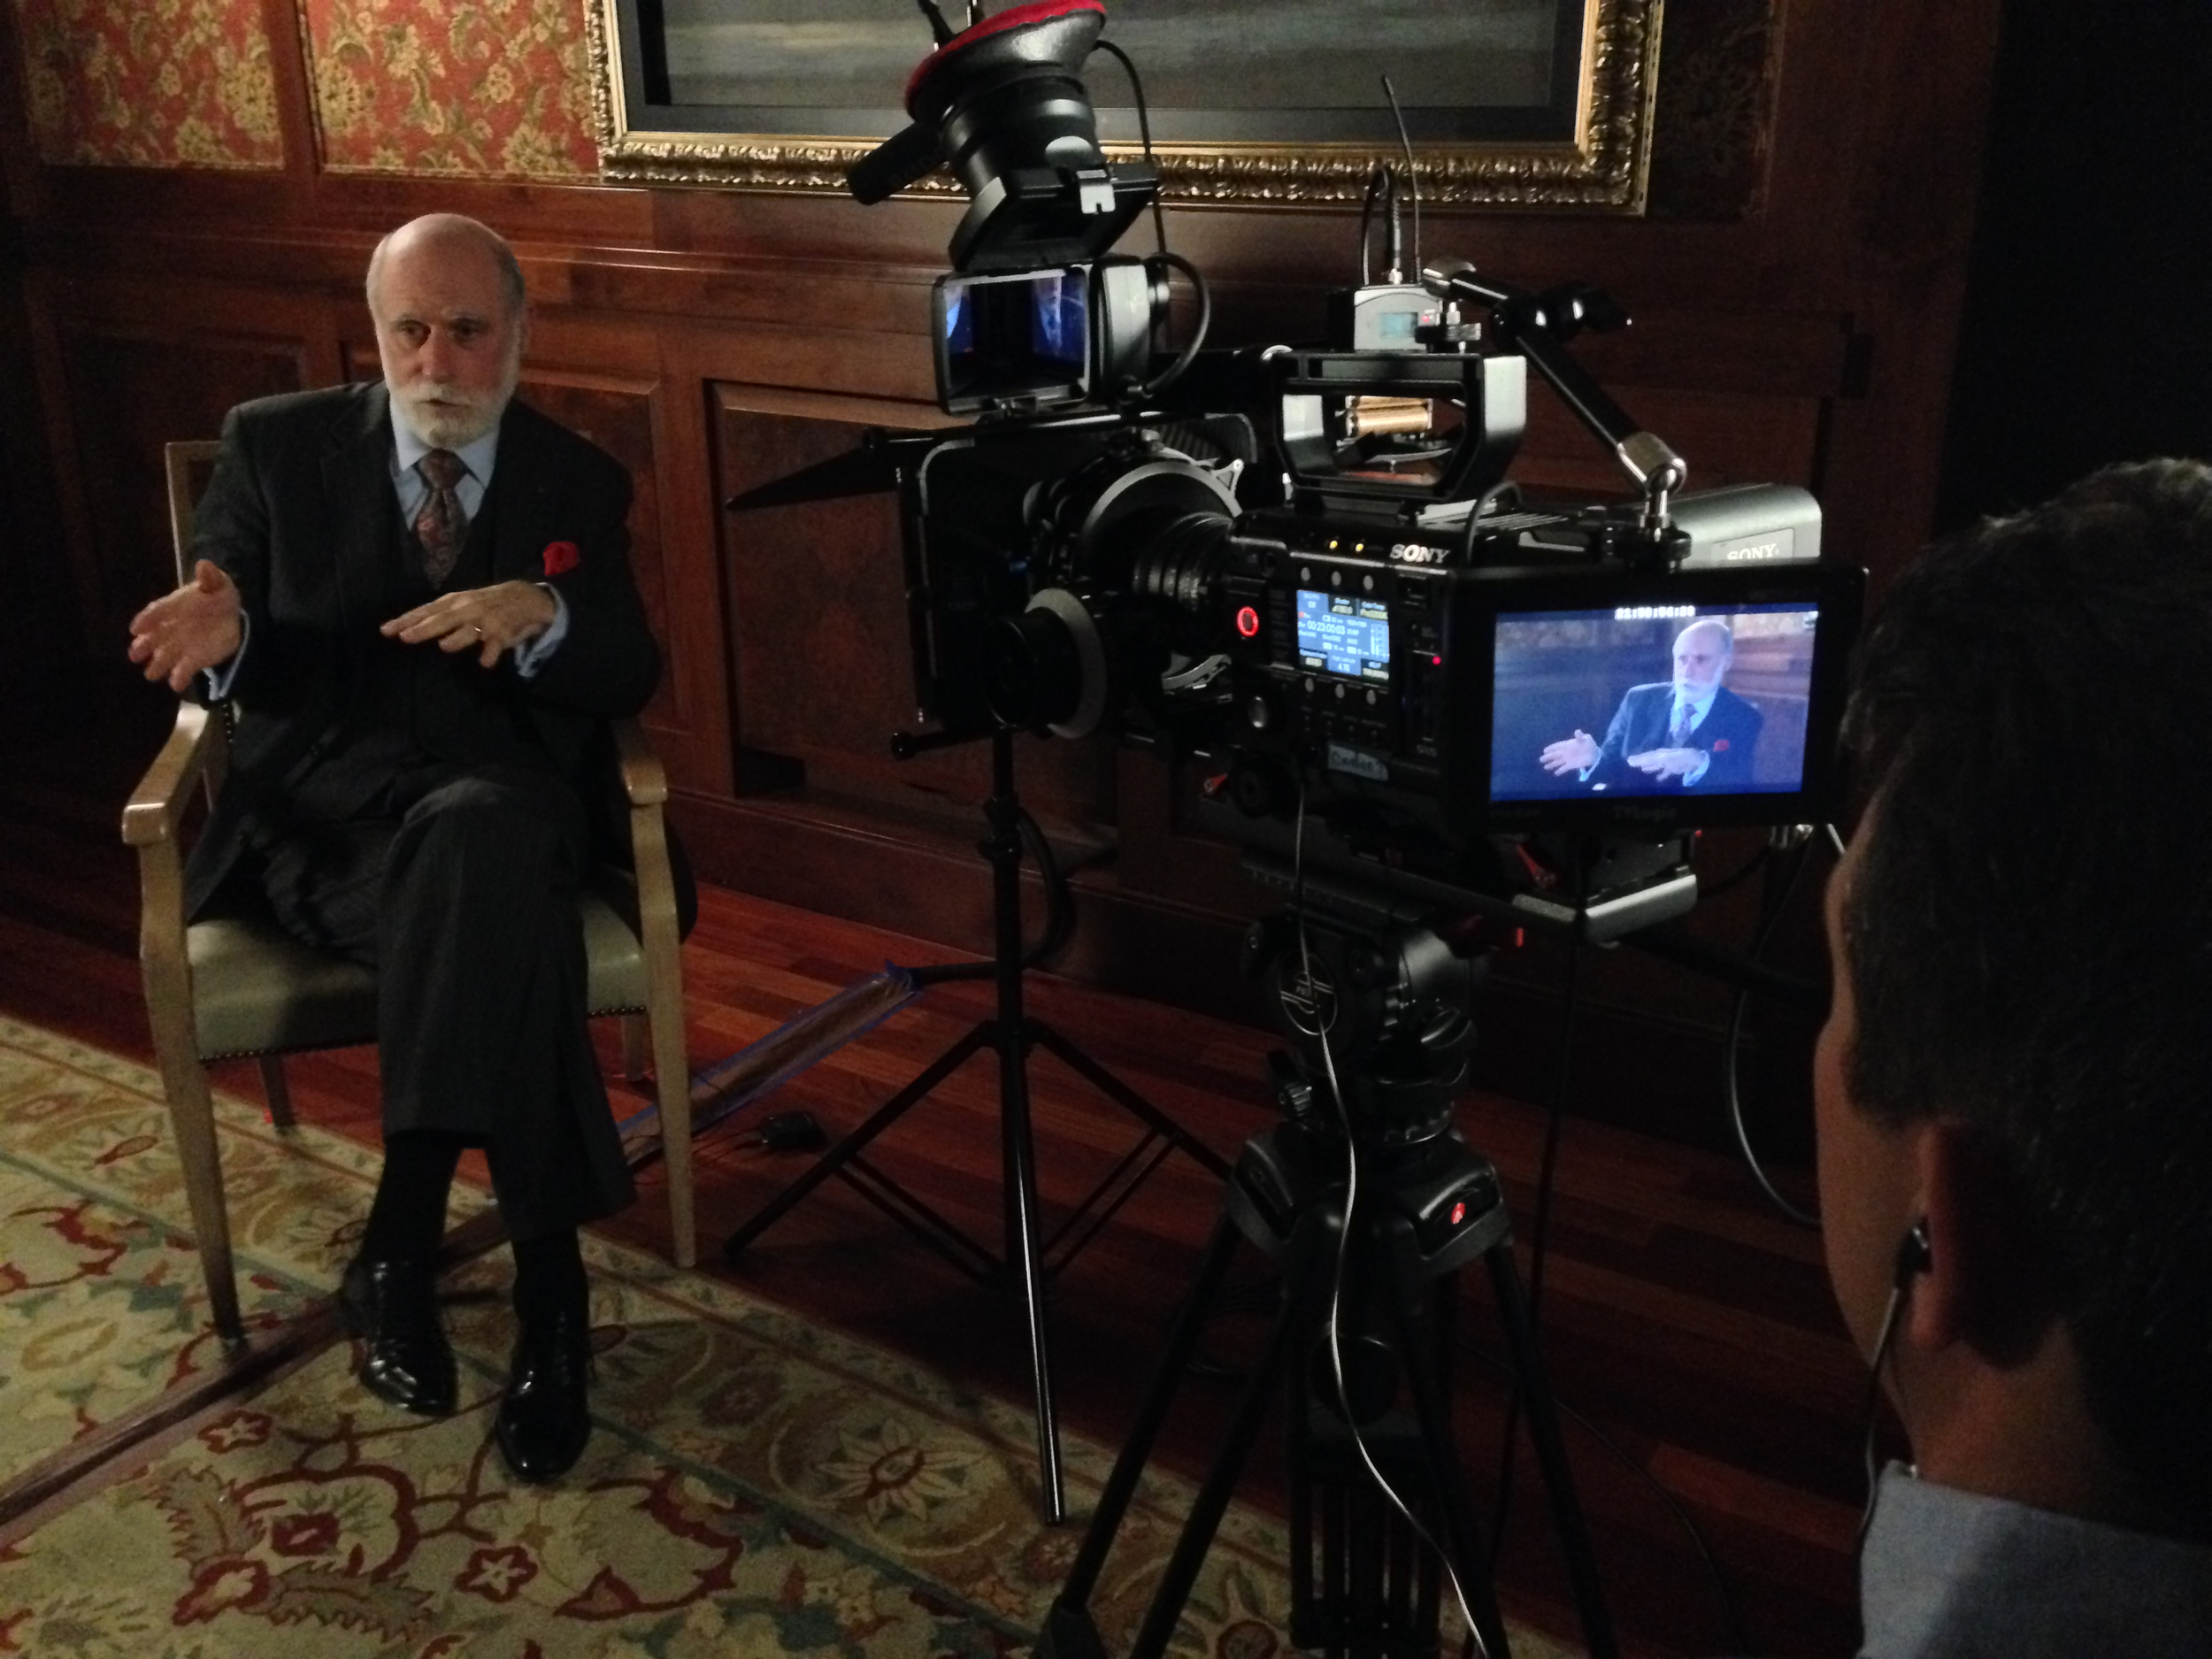 Internet Pioneer Vinton G. Cerf talks about the importance of an undiagnosed database to improve the future of medicine